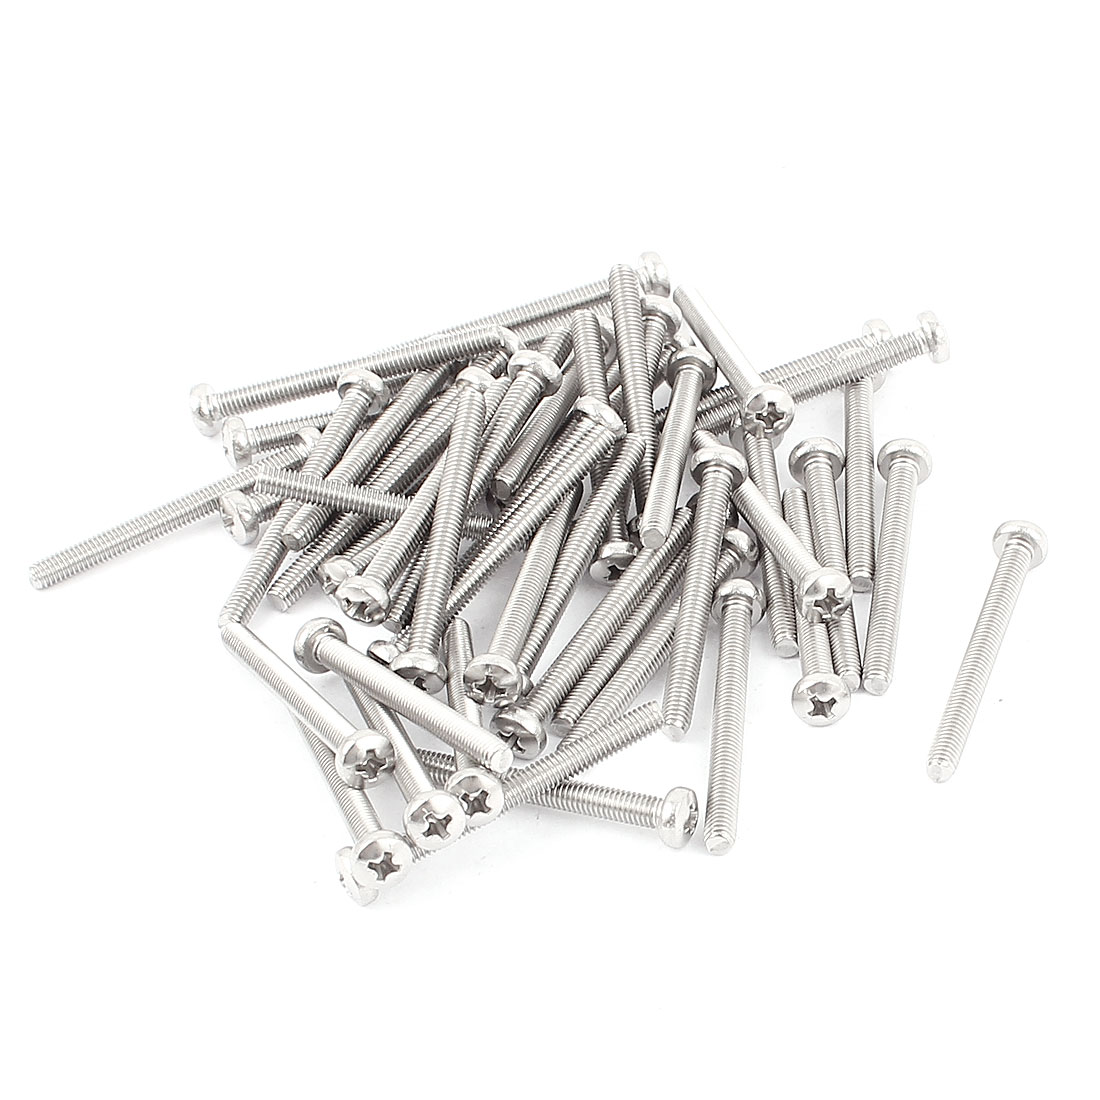 M3x30mm Round Phillips Head Screw Bolts Silver Tone 50pcs